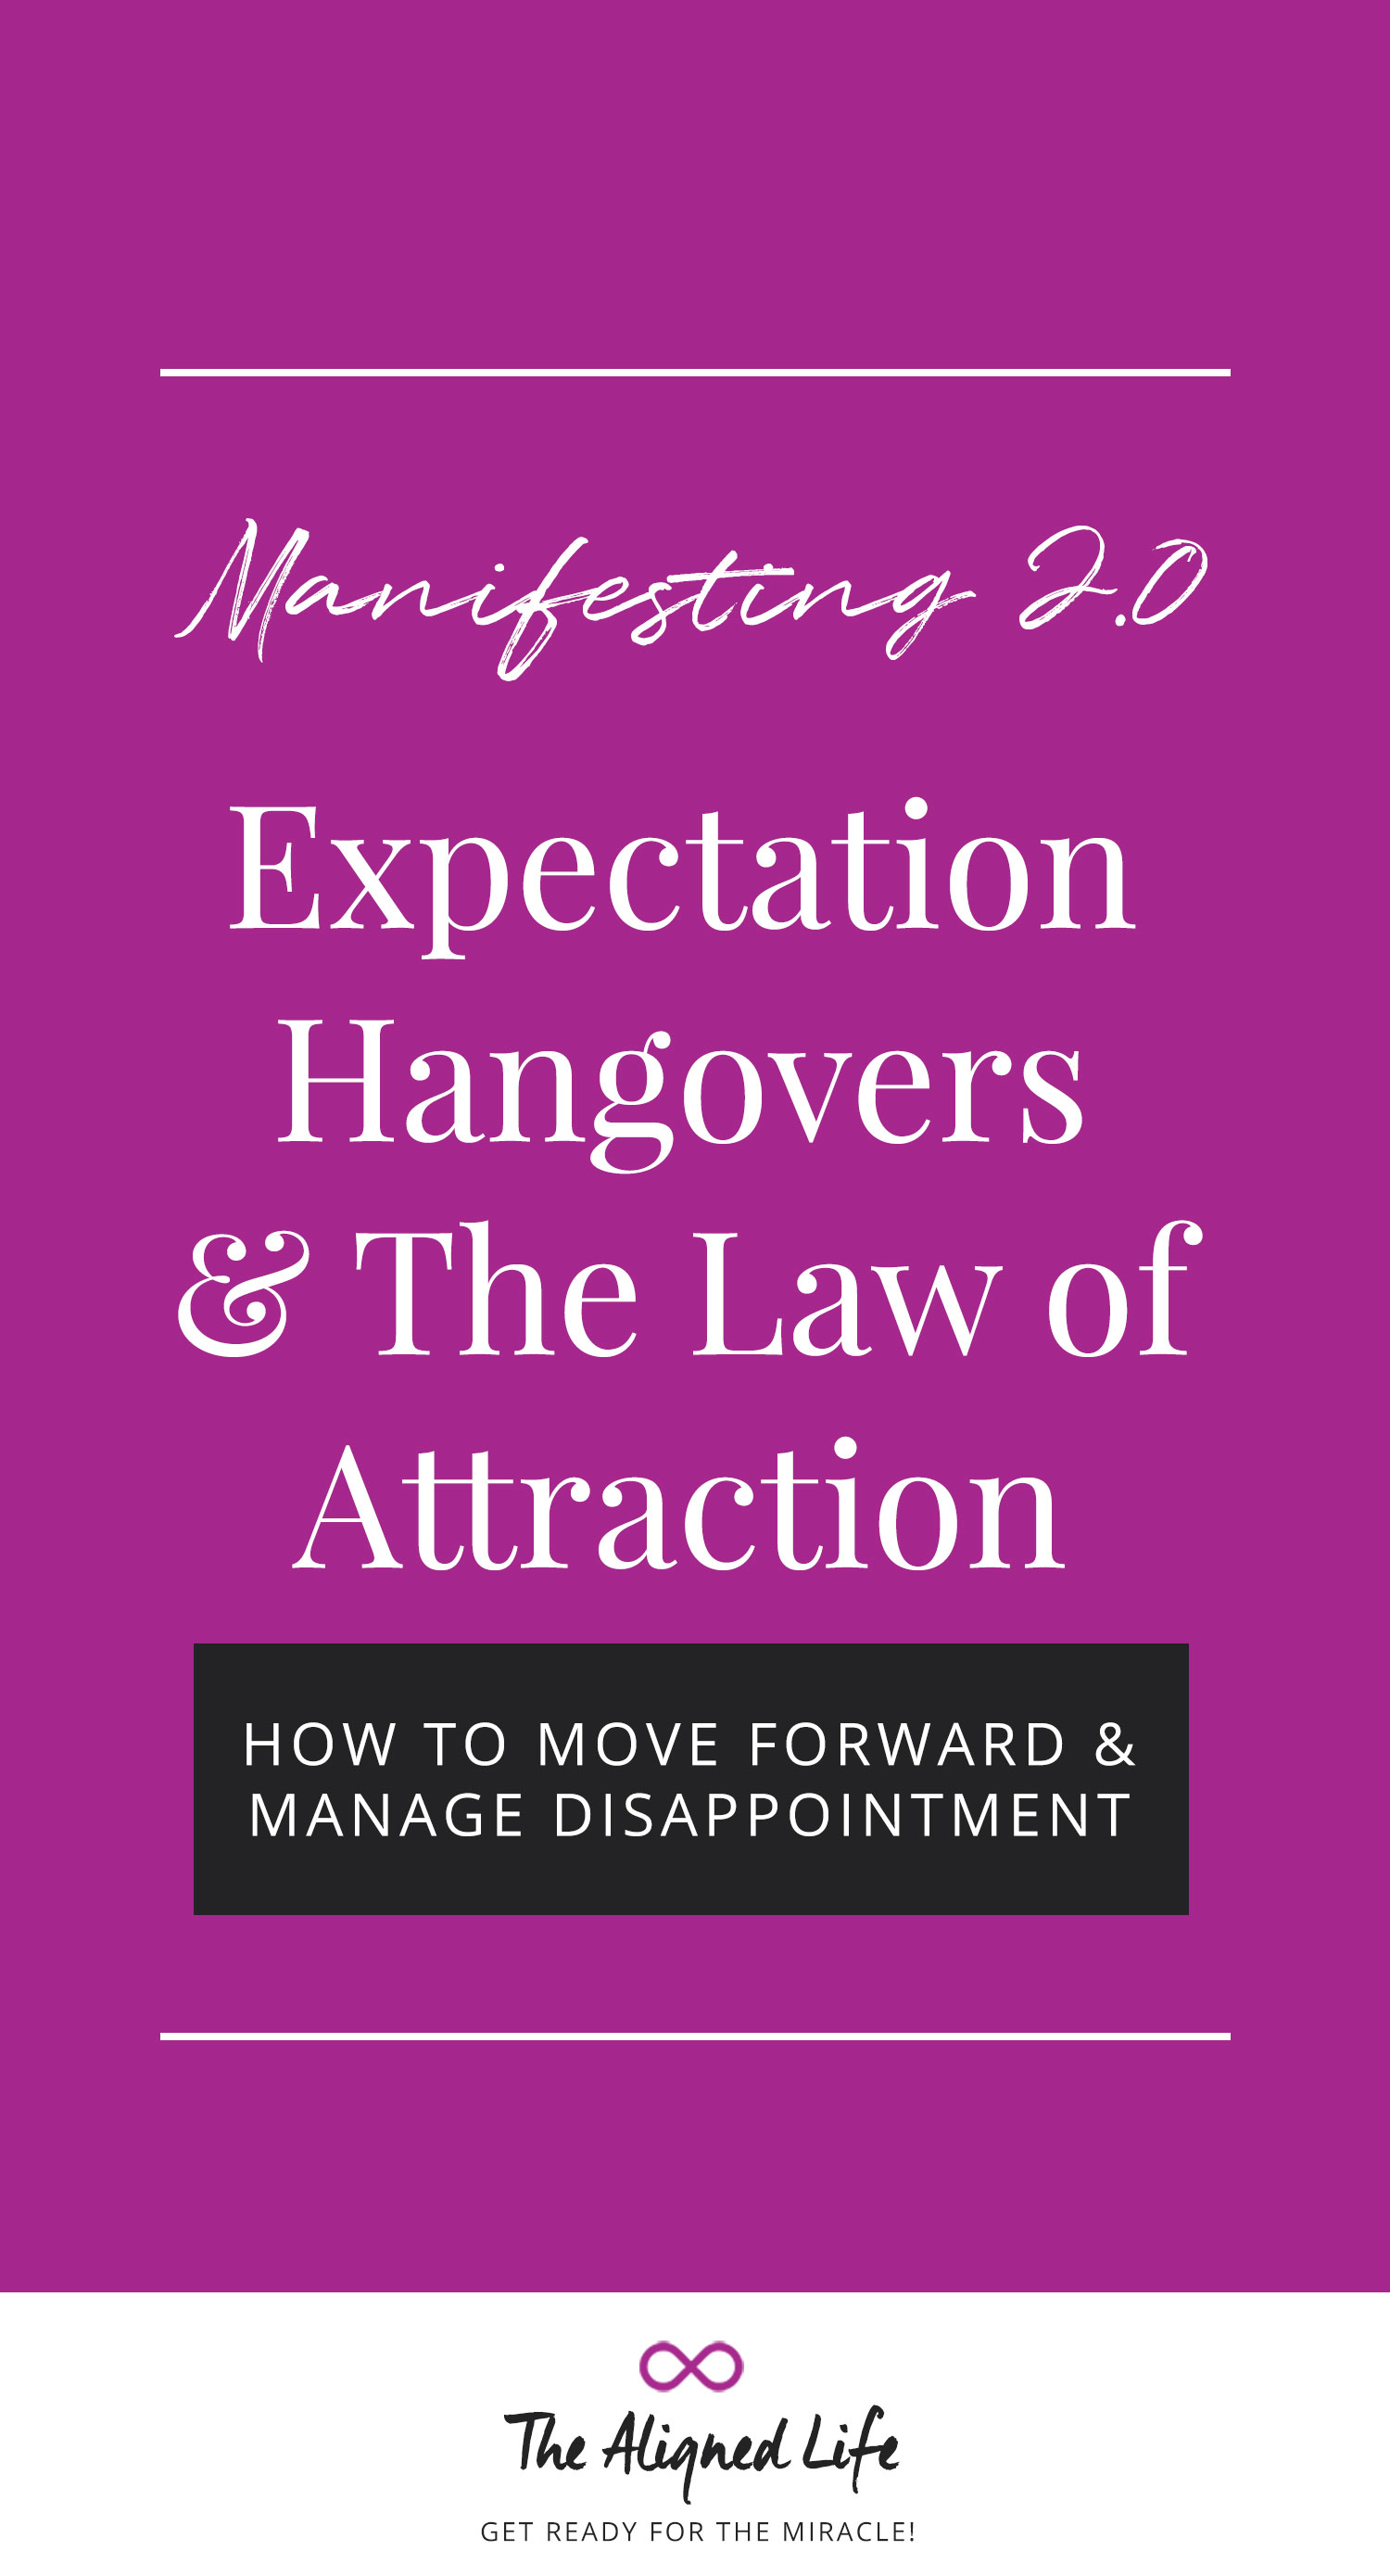 Manifesting 2.0: Expectation Hangovers + The Law of Attraction